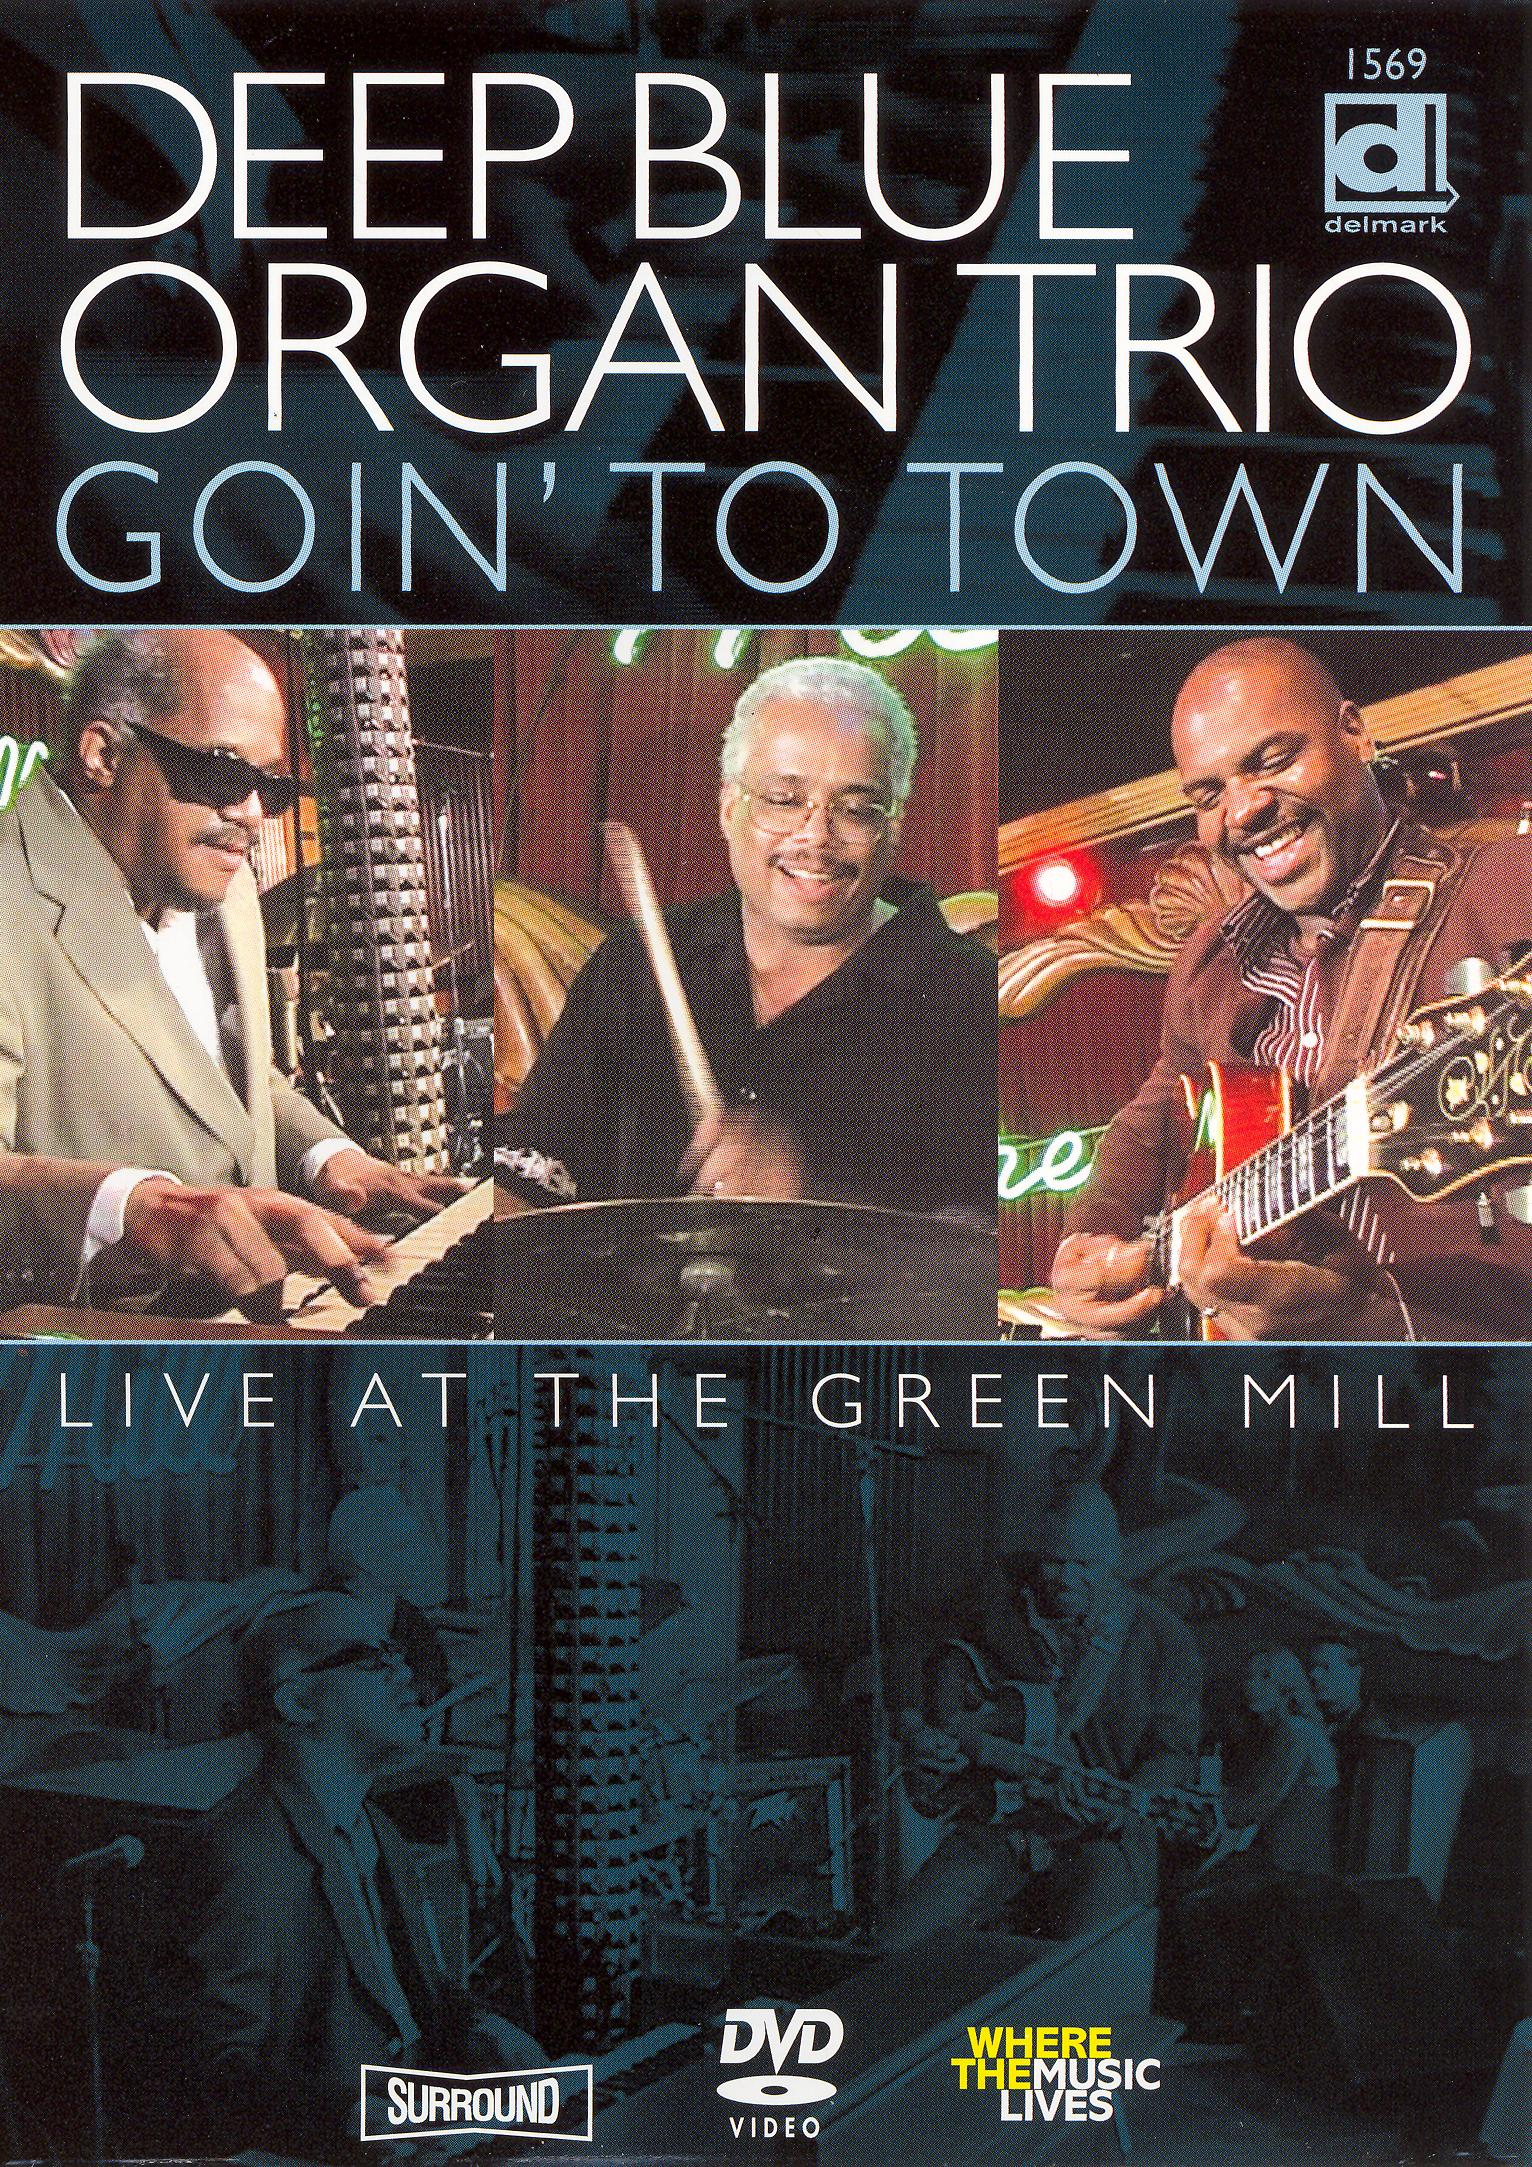 Deep Blue Organ Trio: Live at the Green Mill